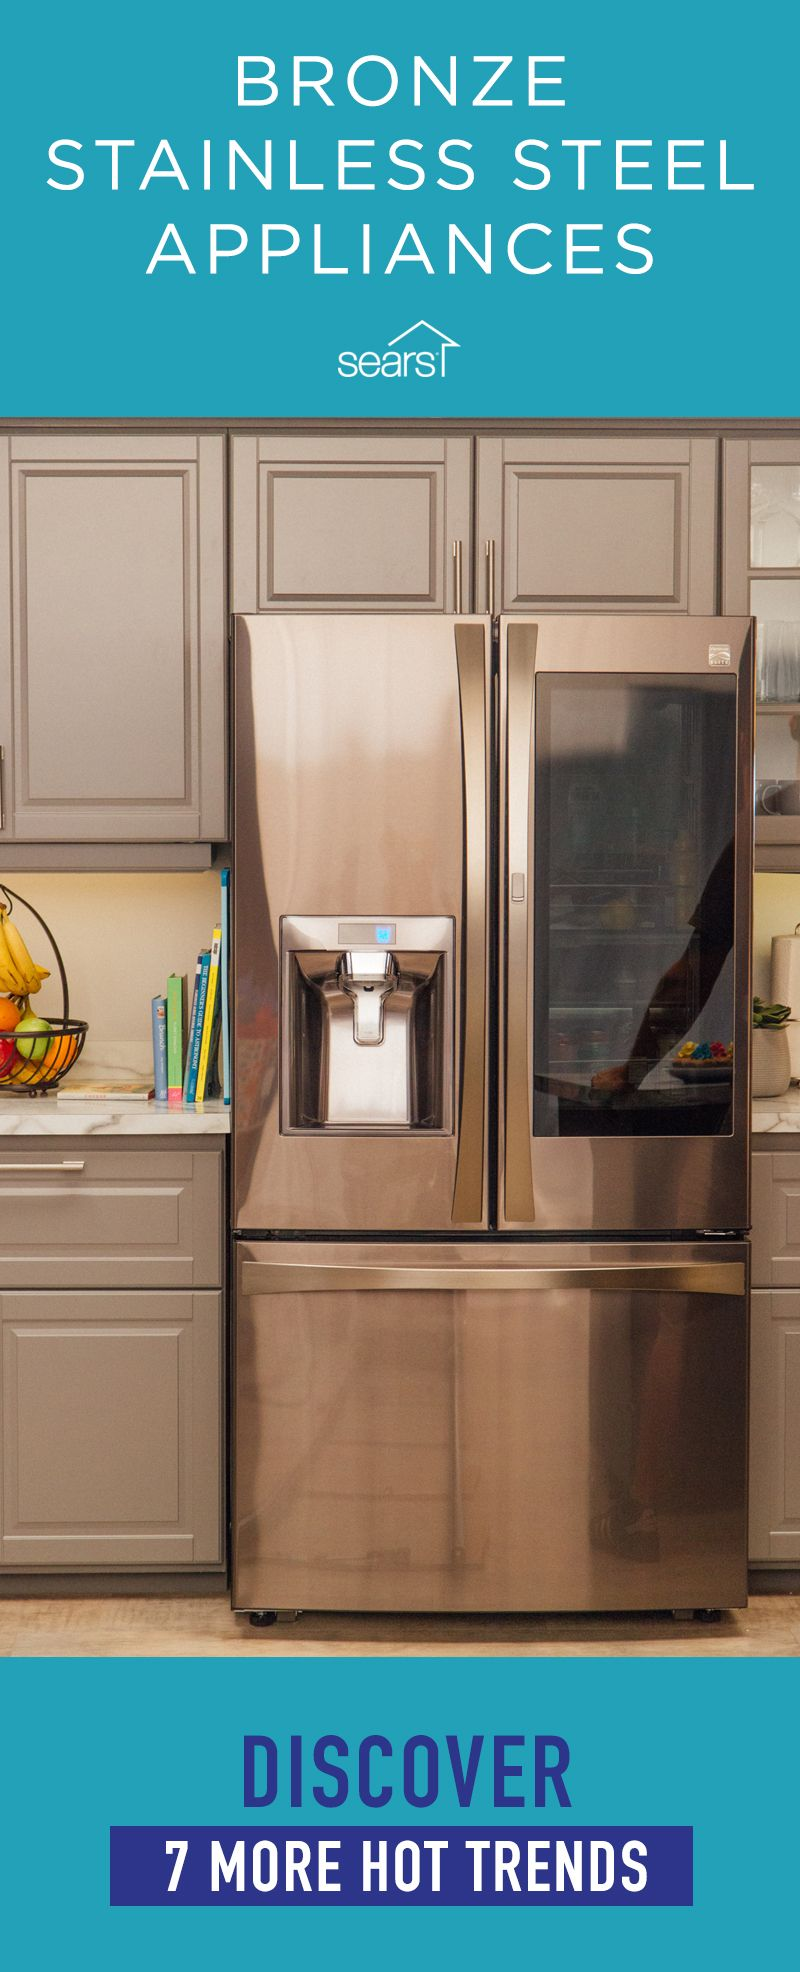 Bronze Stainless Steel Appliances Are Just One Of This